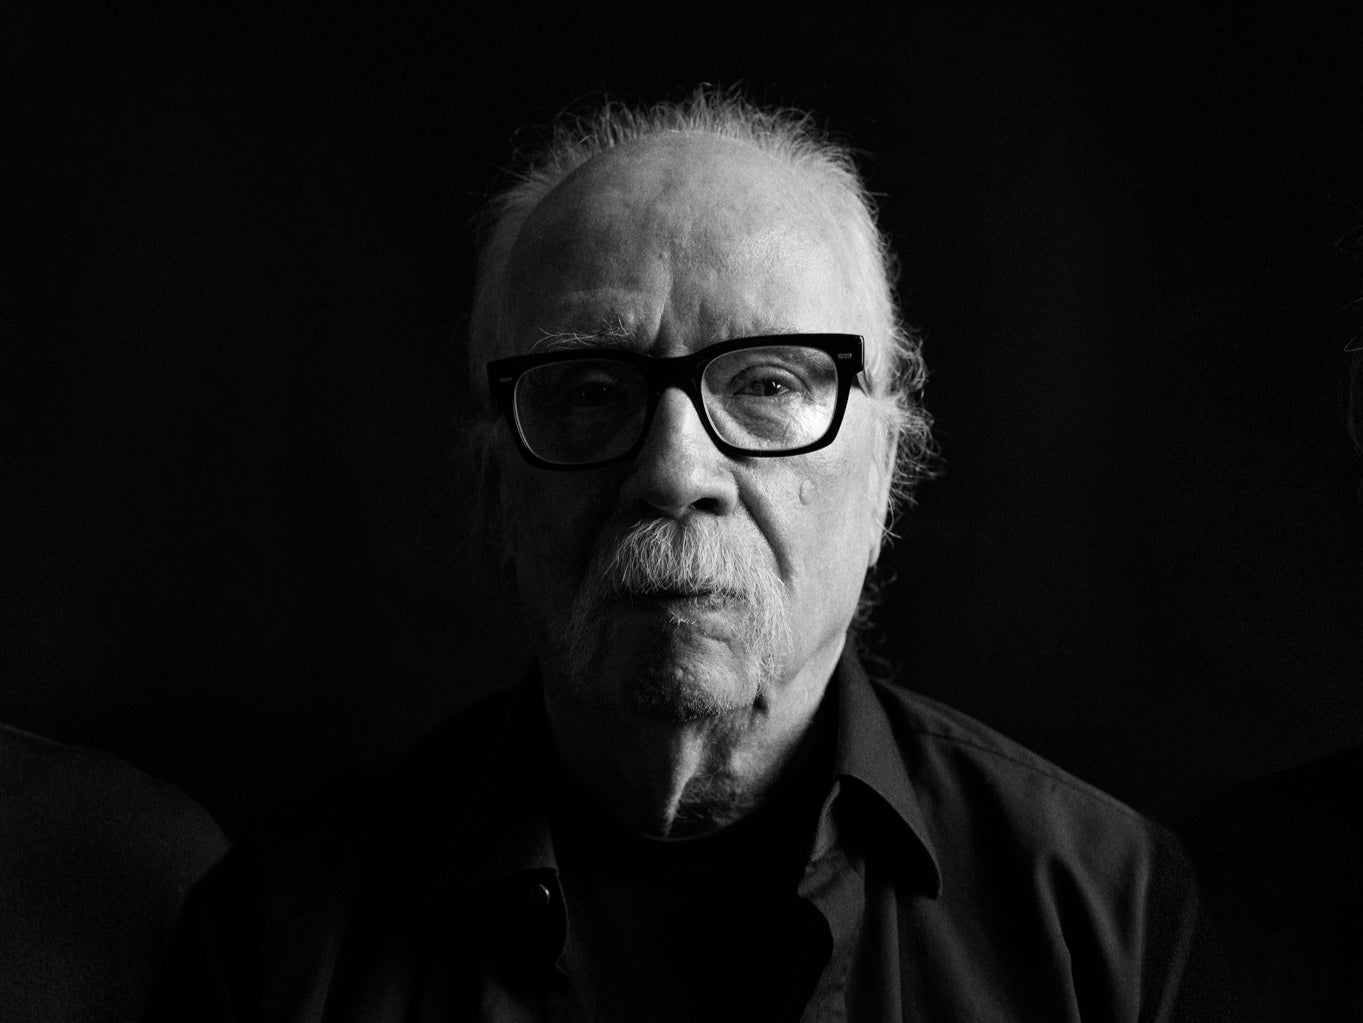 John Carpenter: 'Come on guys, there are no lizard people! These theories are just foolishness'